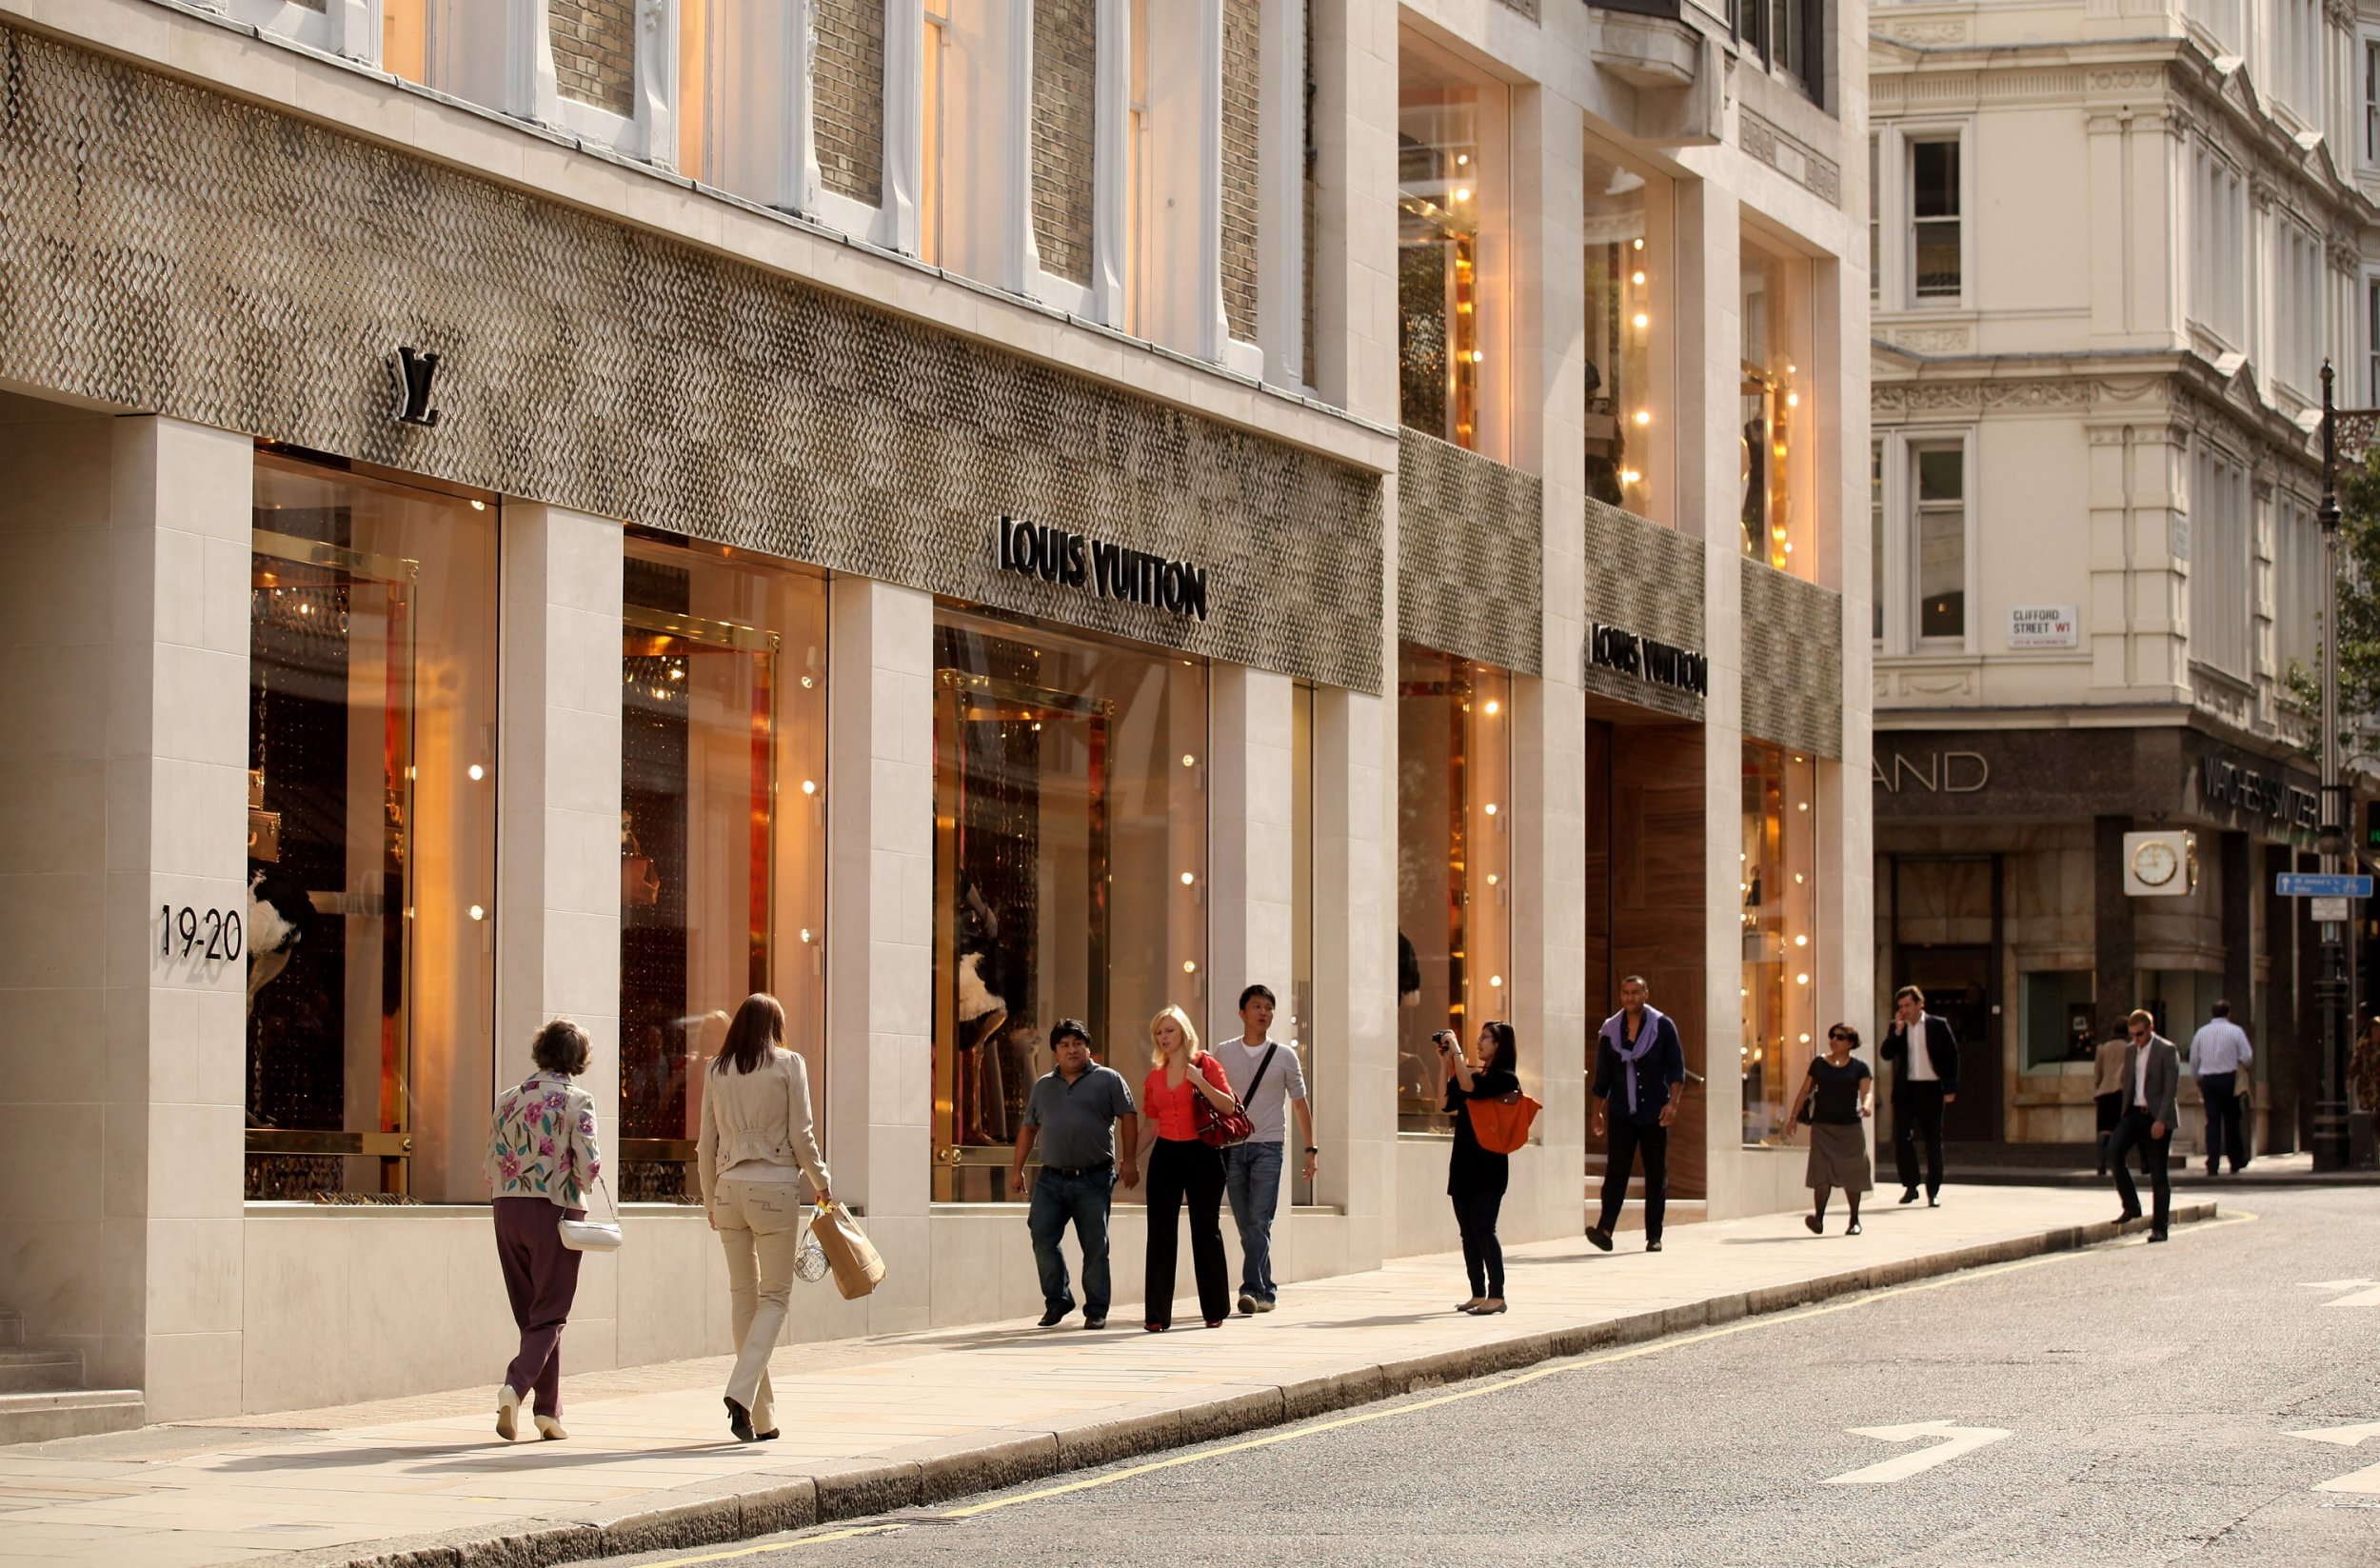 Mayfair '£1000 shop' is gross parody of poverty Credit: Getty